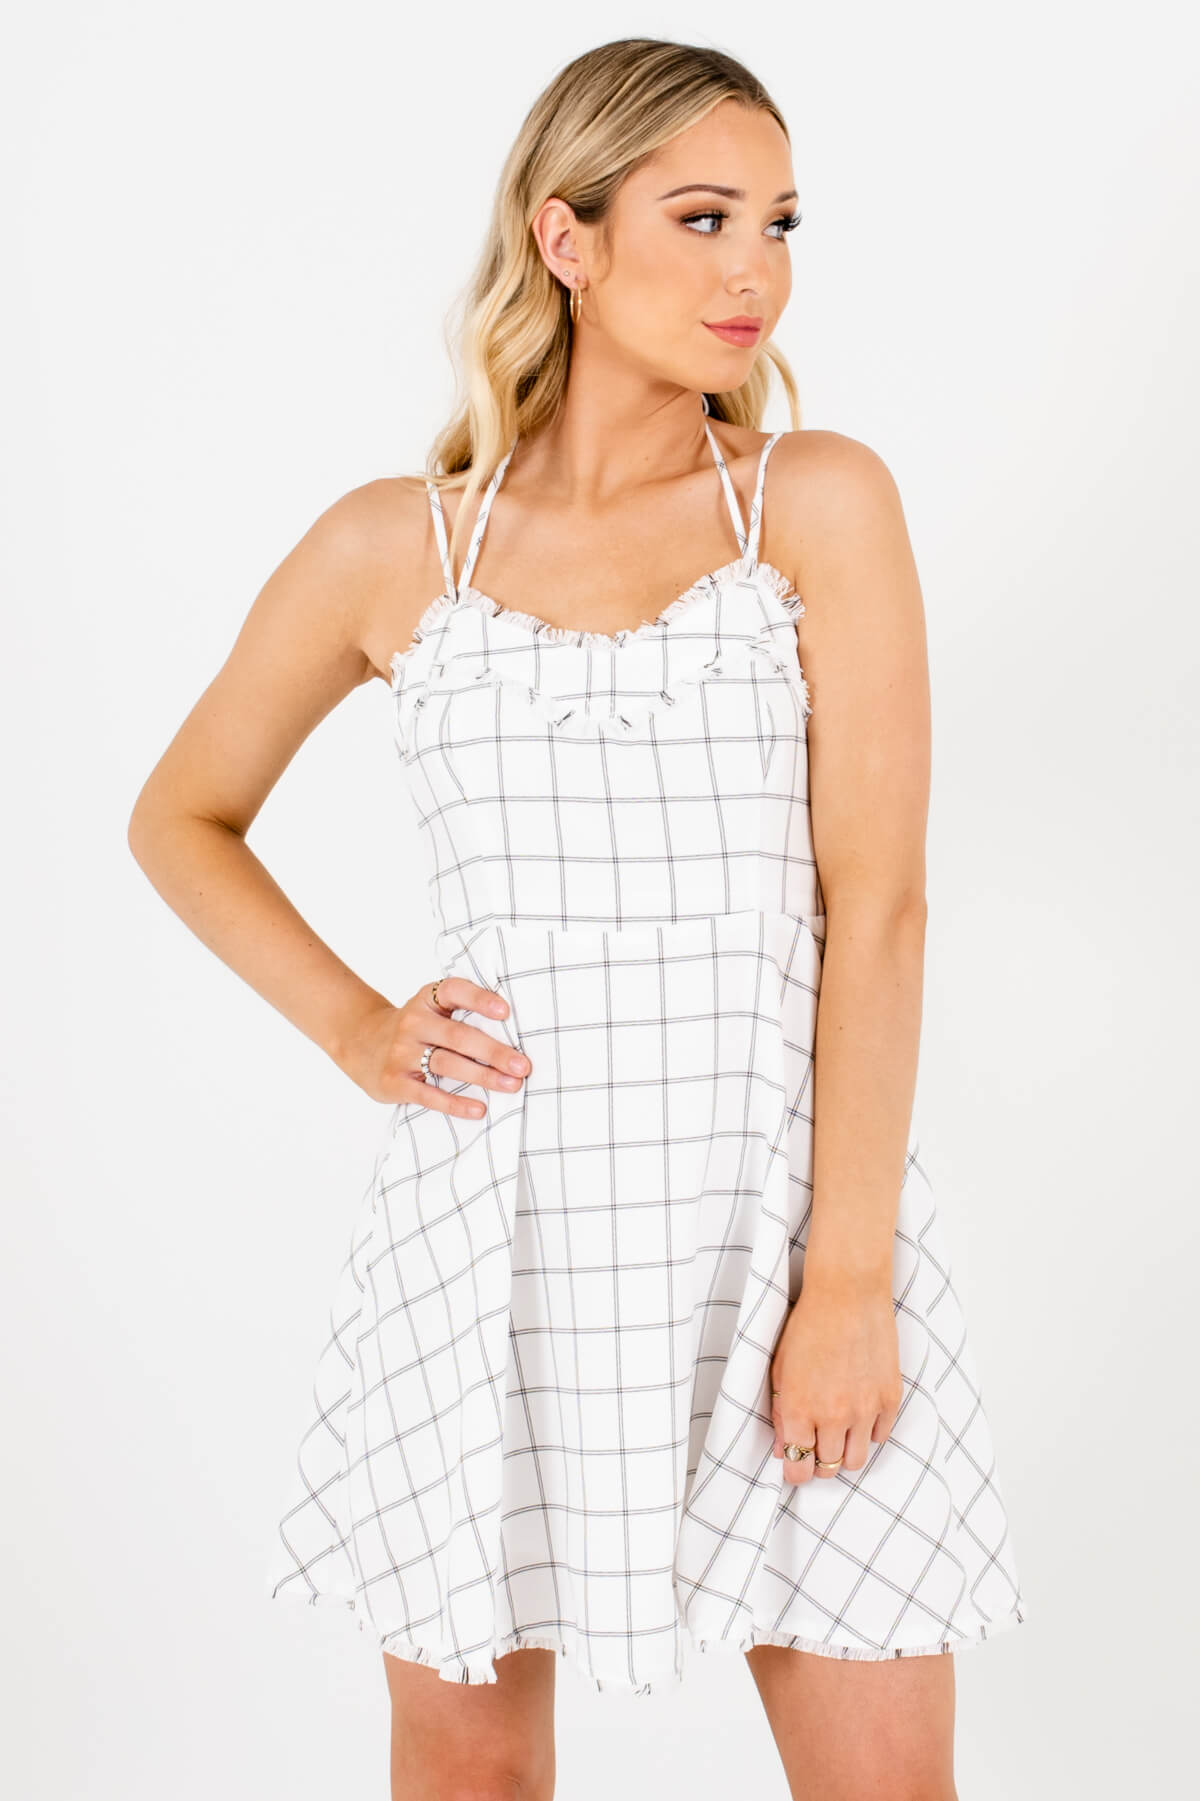 White and Black Plaid Patterned Boutique Mini Dresses for Women